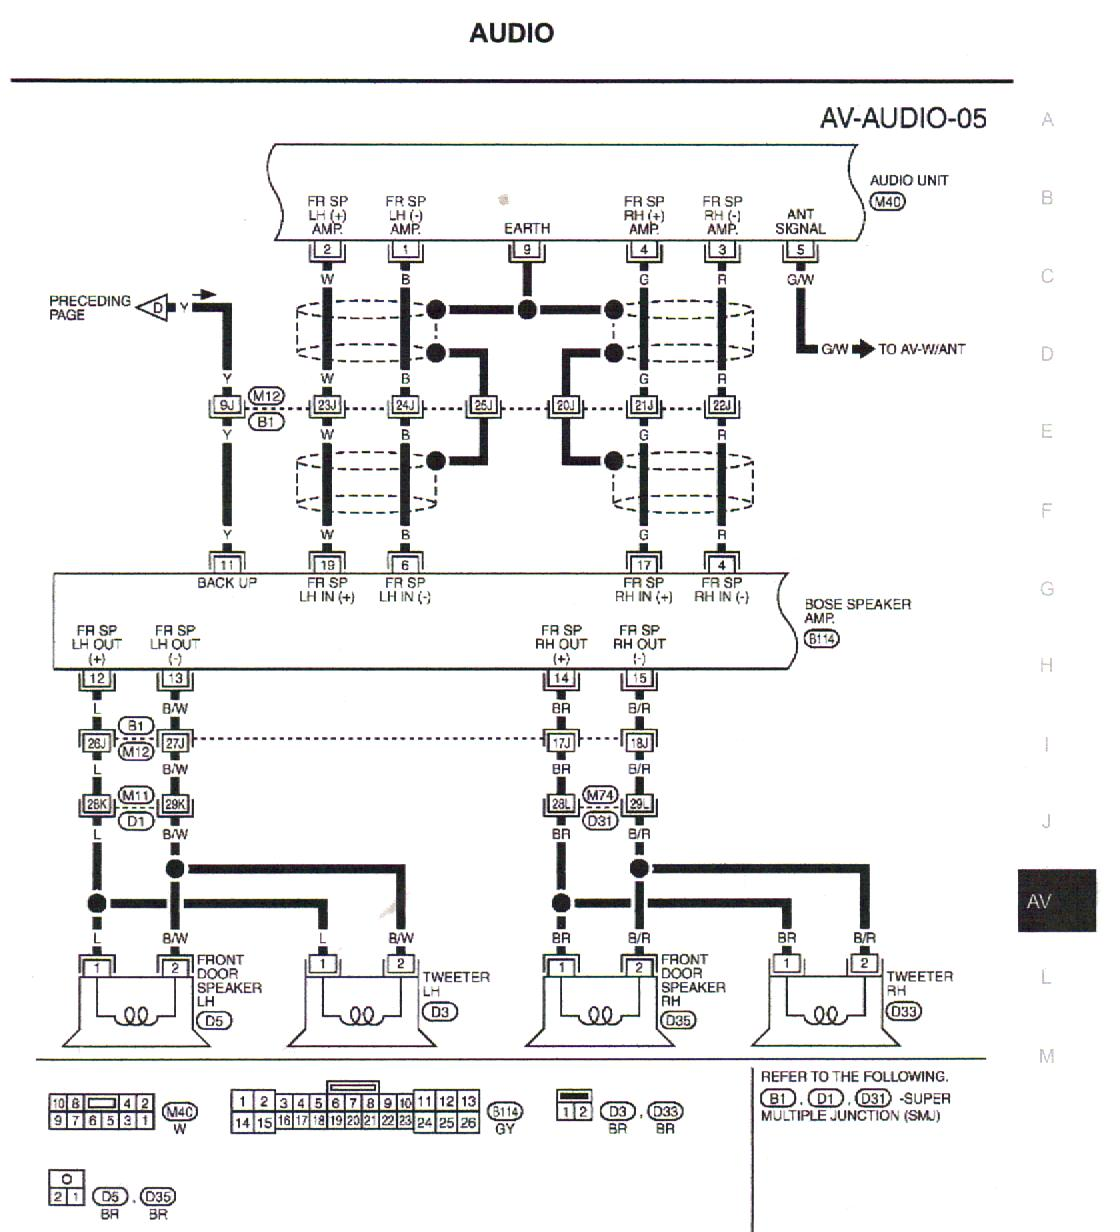 159410d1369838585 bypassing bose amplifier 03 04 g35 bose front right speaker wiring?resize=665%2C732 nissan murano stereo wiring diagram wiring diagram Car Audio System Wiring Diagram at virtualis.co